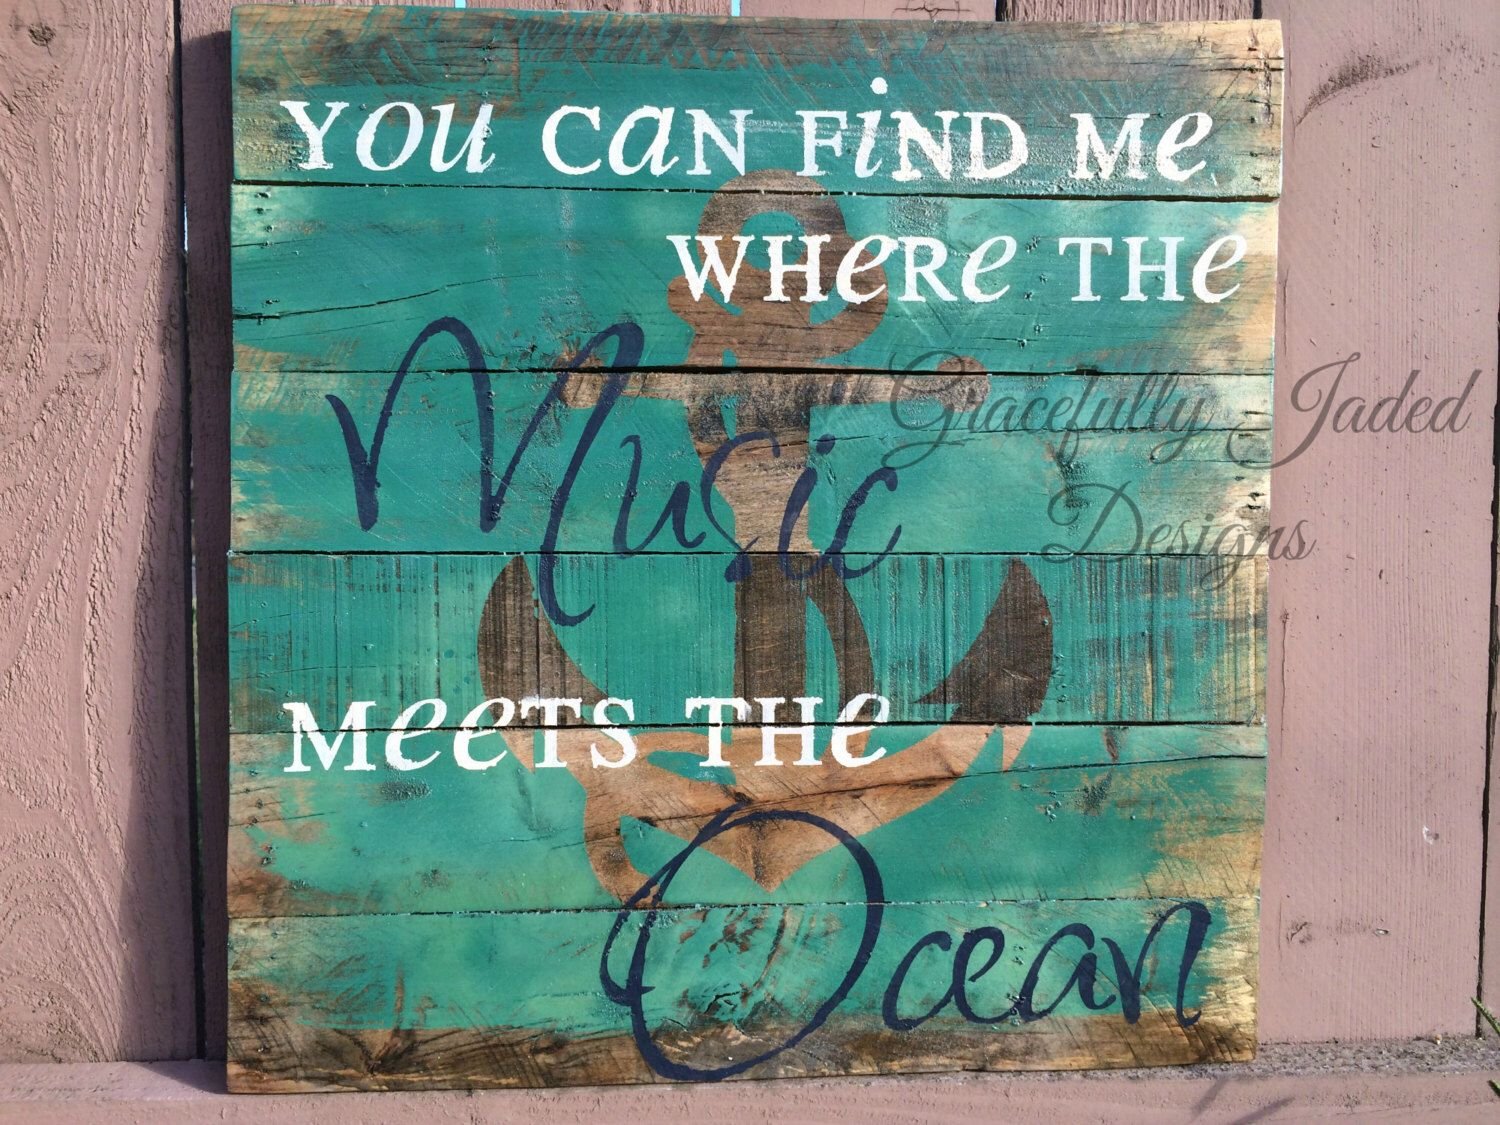 You can find Me Where The Music Meets The Ocean Pallet, Anchor Sign, Zac Brown Band Lyrics, Beach House Sign, Beach Wedding Sign by gracefullyjaded on Etsy https://www.etsy.com/listing/217697128/you-can-find-me-where-the-music-meets